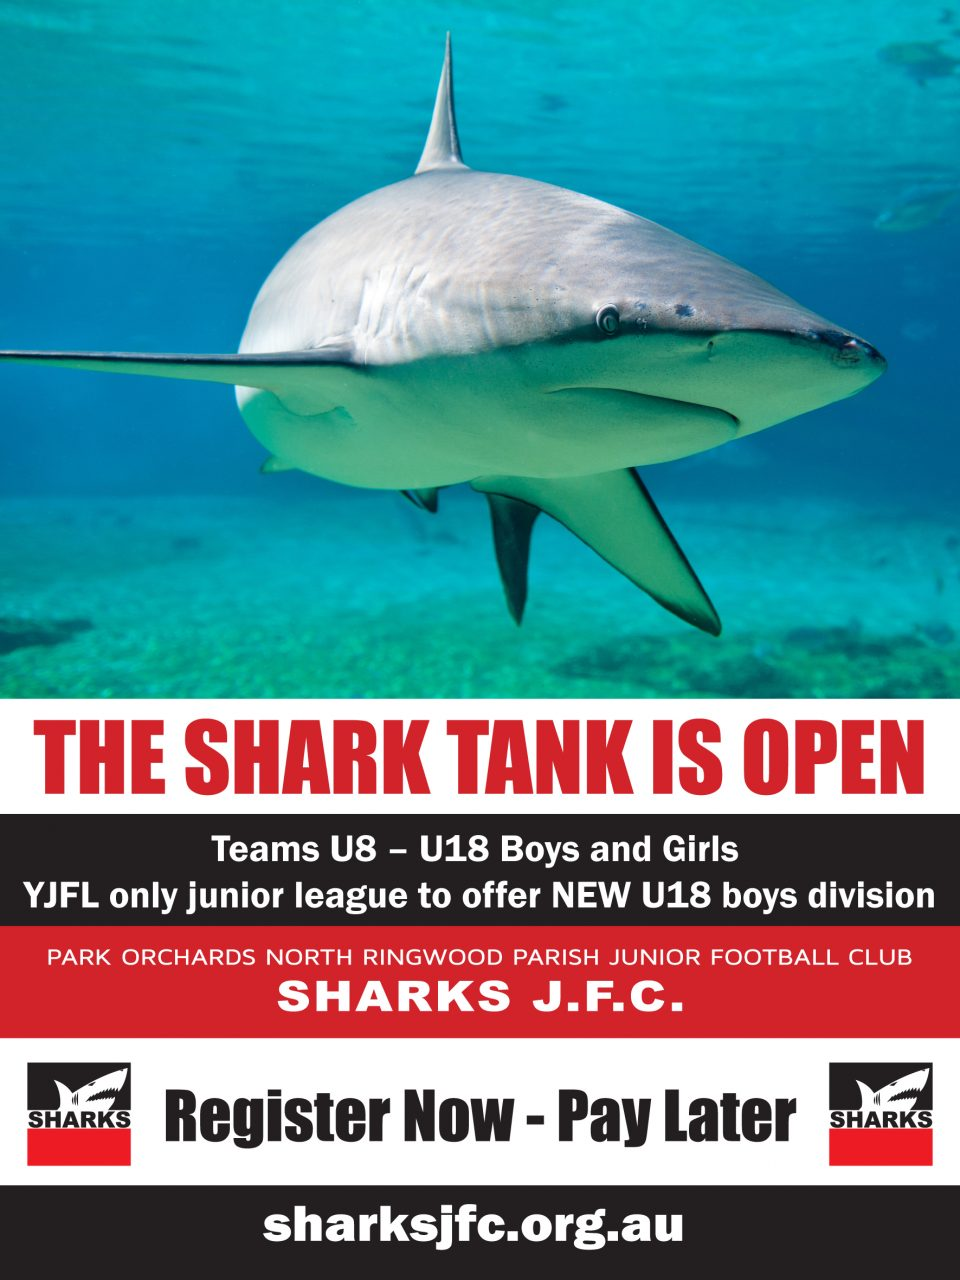 The Shark Tank is open - Teams U8 to U18 Boys and Girls - YJFLonly junior league to offer NEW U18 Boys division - Sharks JFC - Register now, pay later